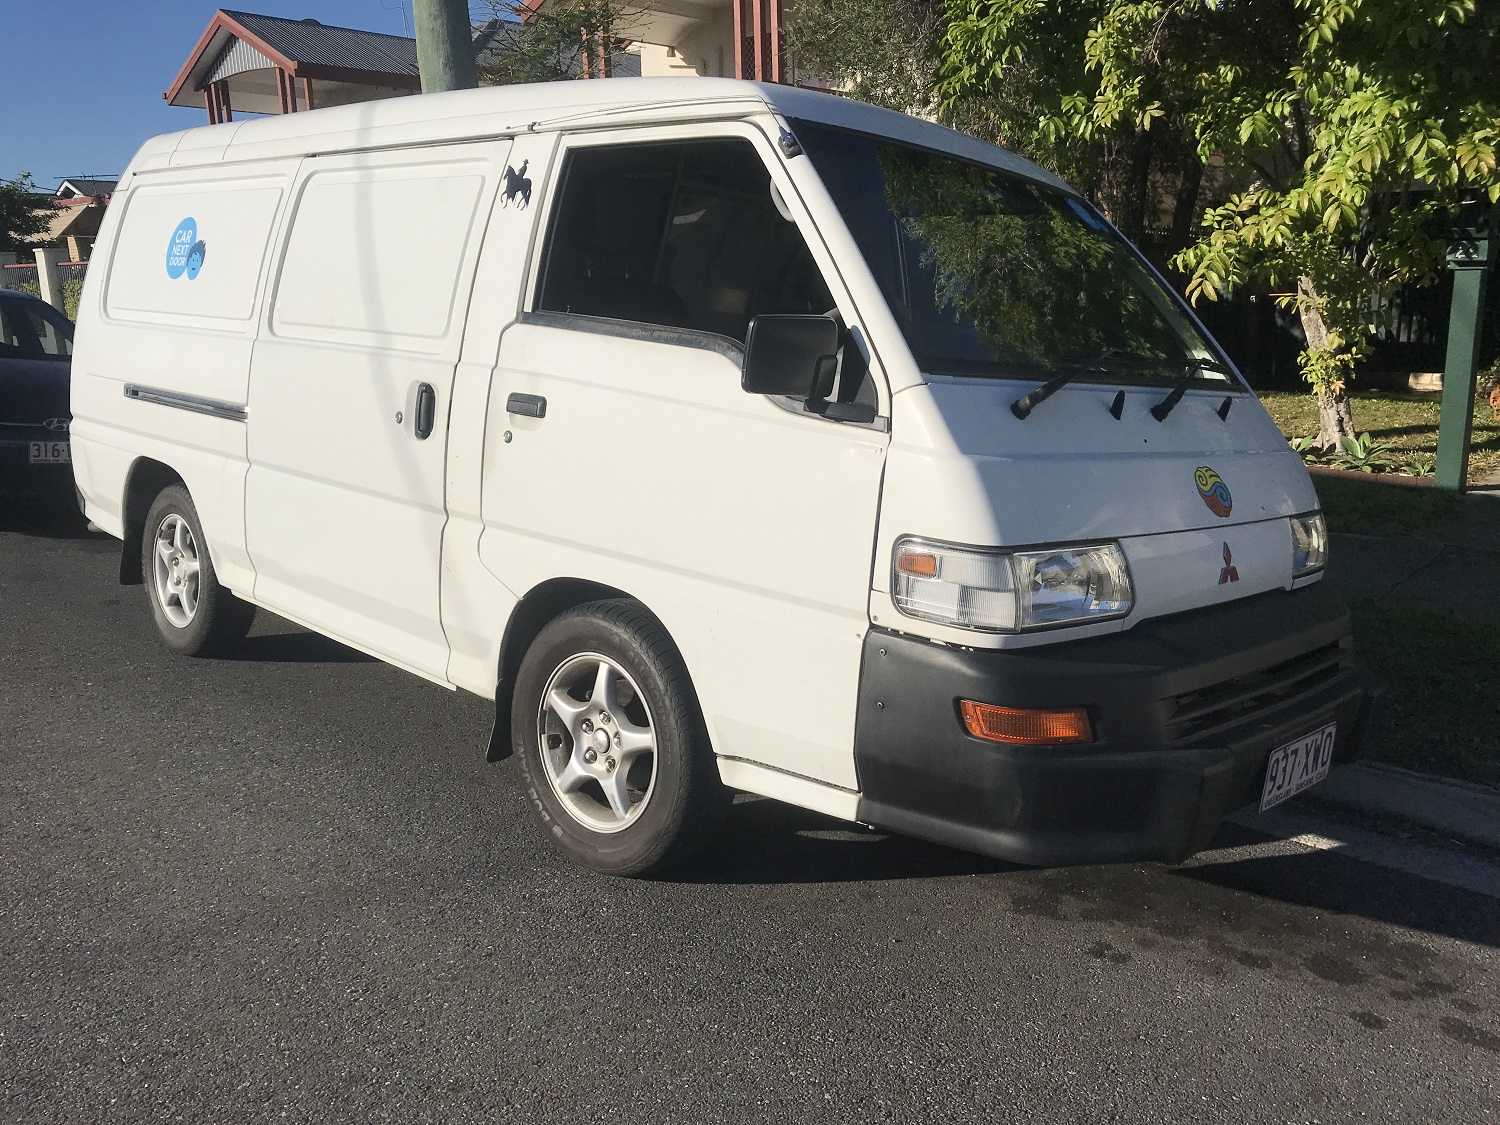 Picture of Pedro's 2006 Mitsubishi Express